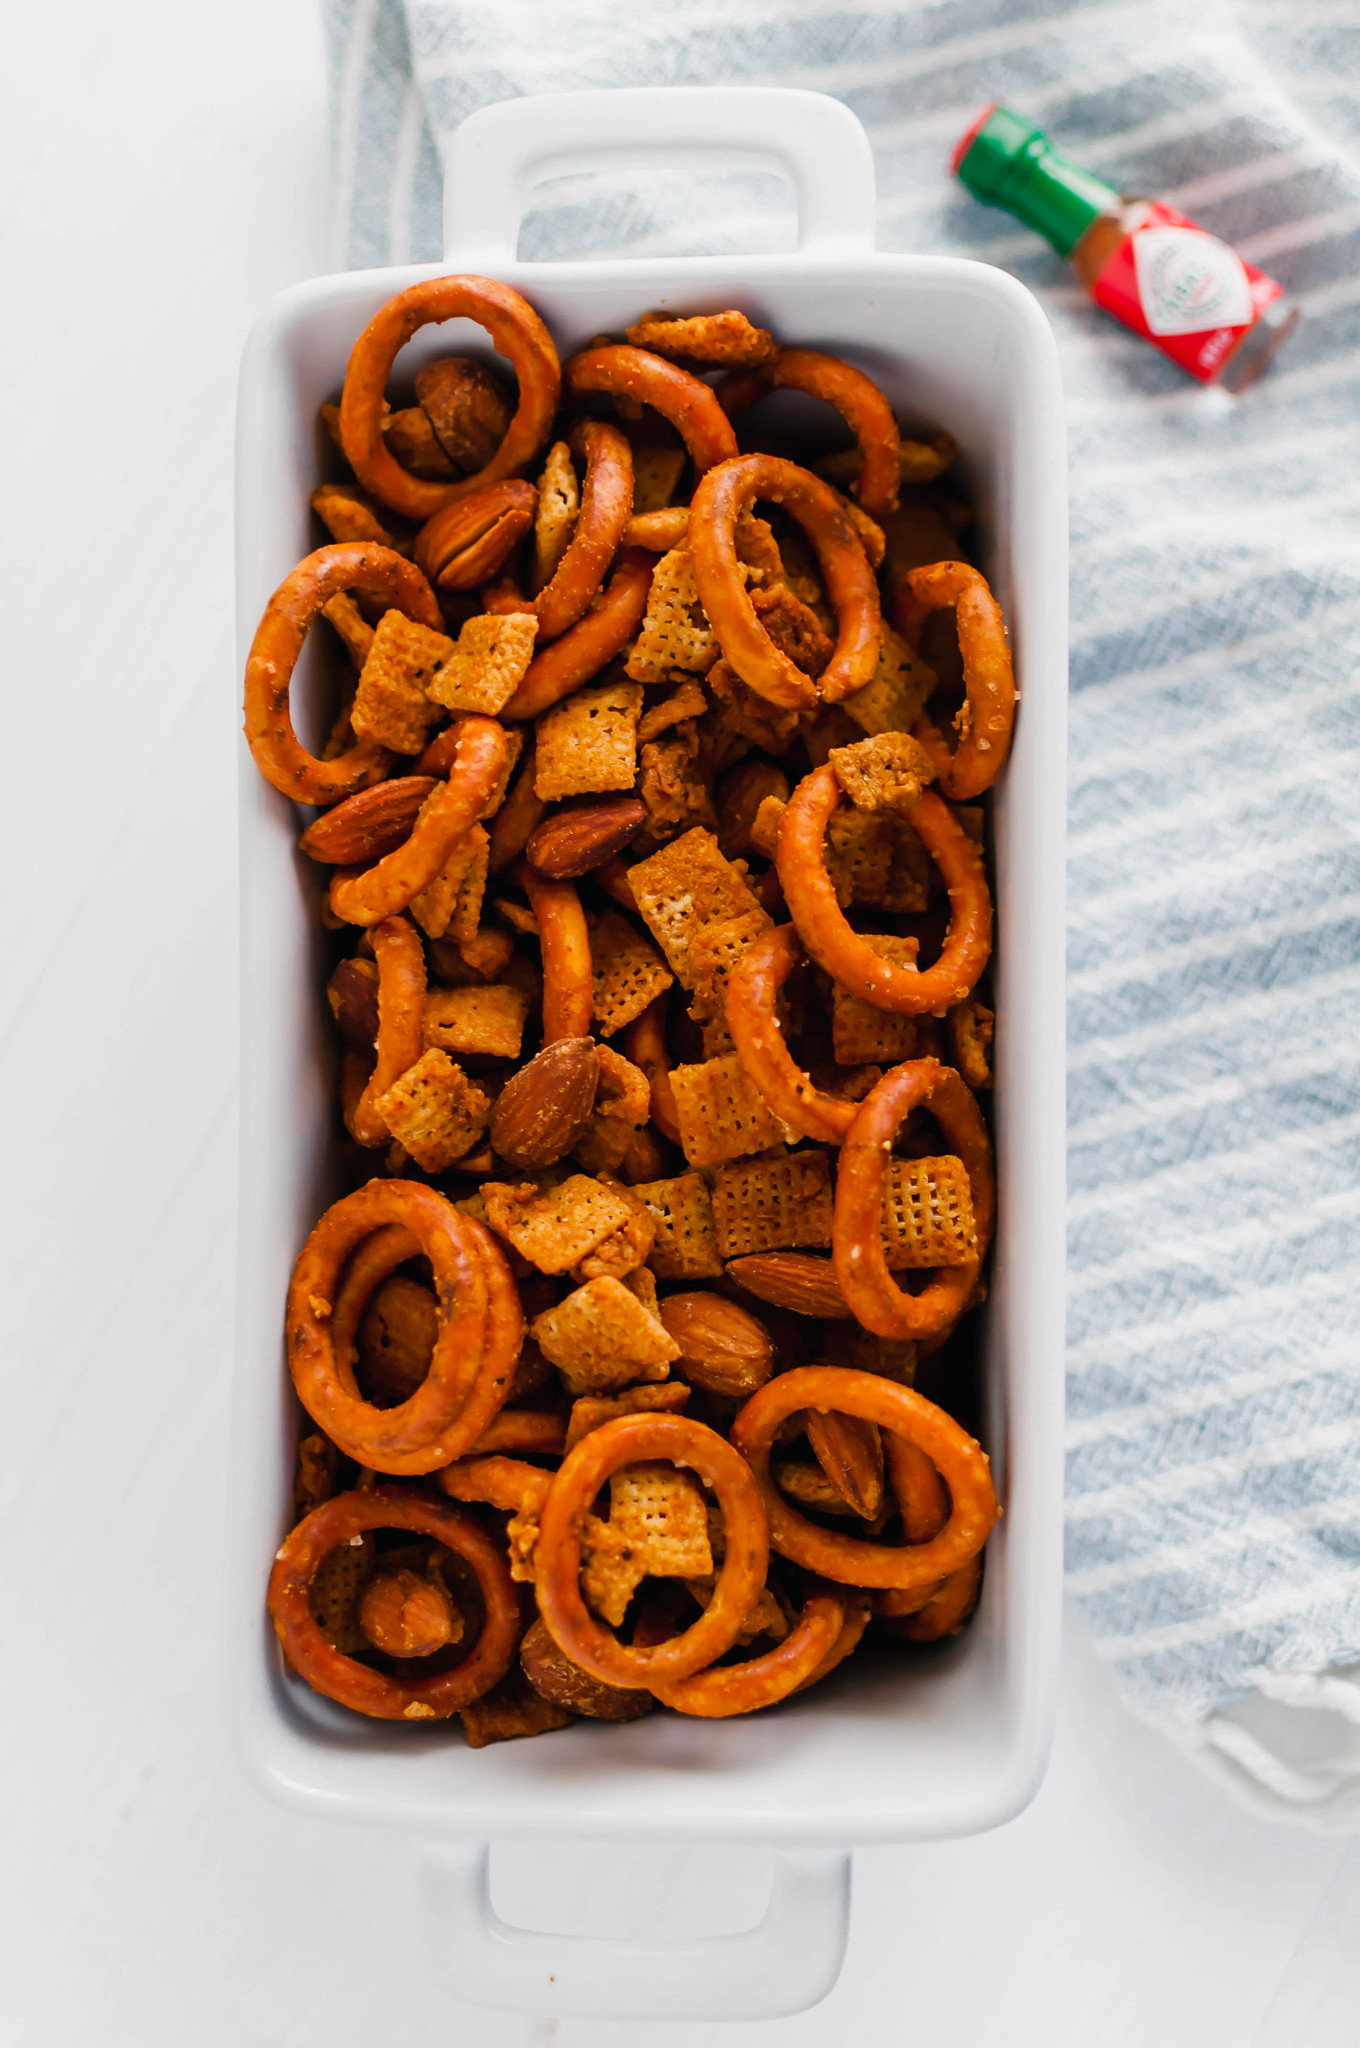 Need to add a little spice to your holidays? This Spicy Chex Mix is just what you need for snacking.